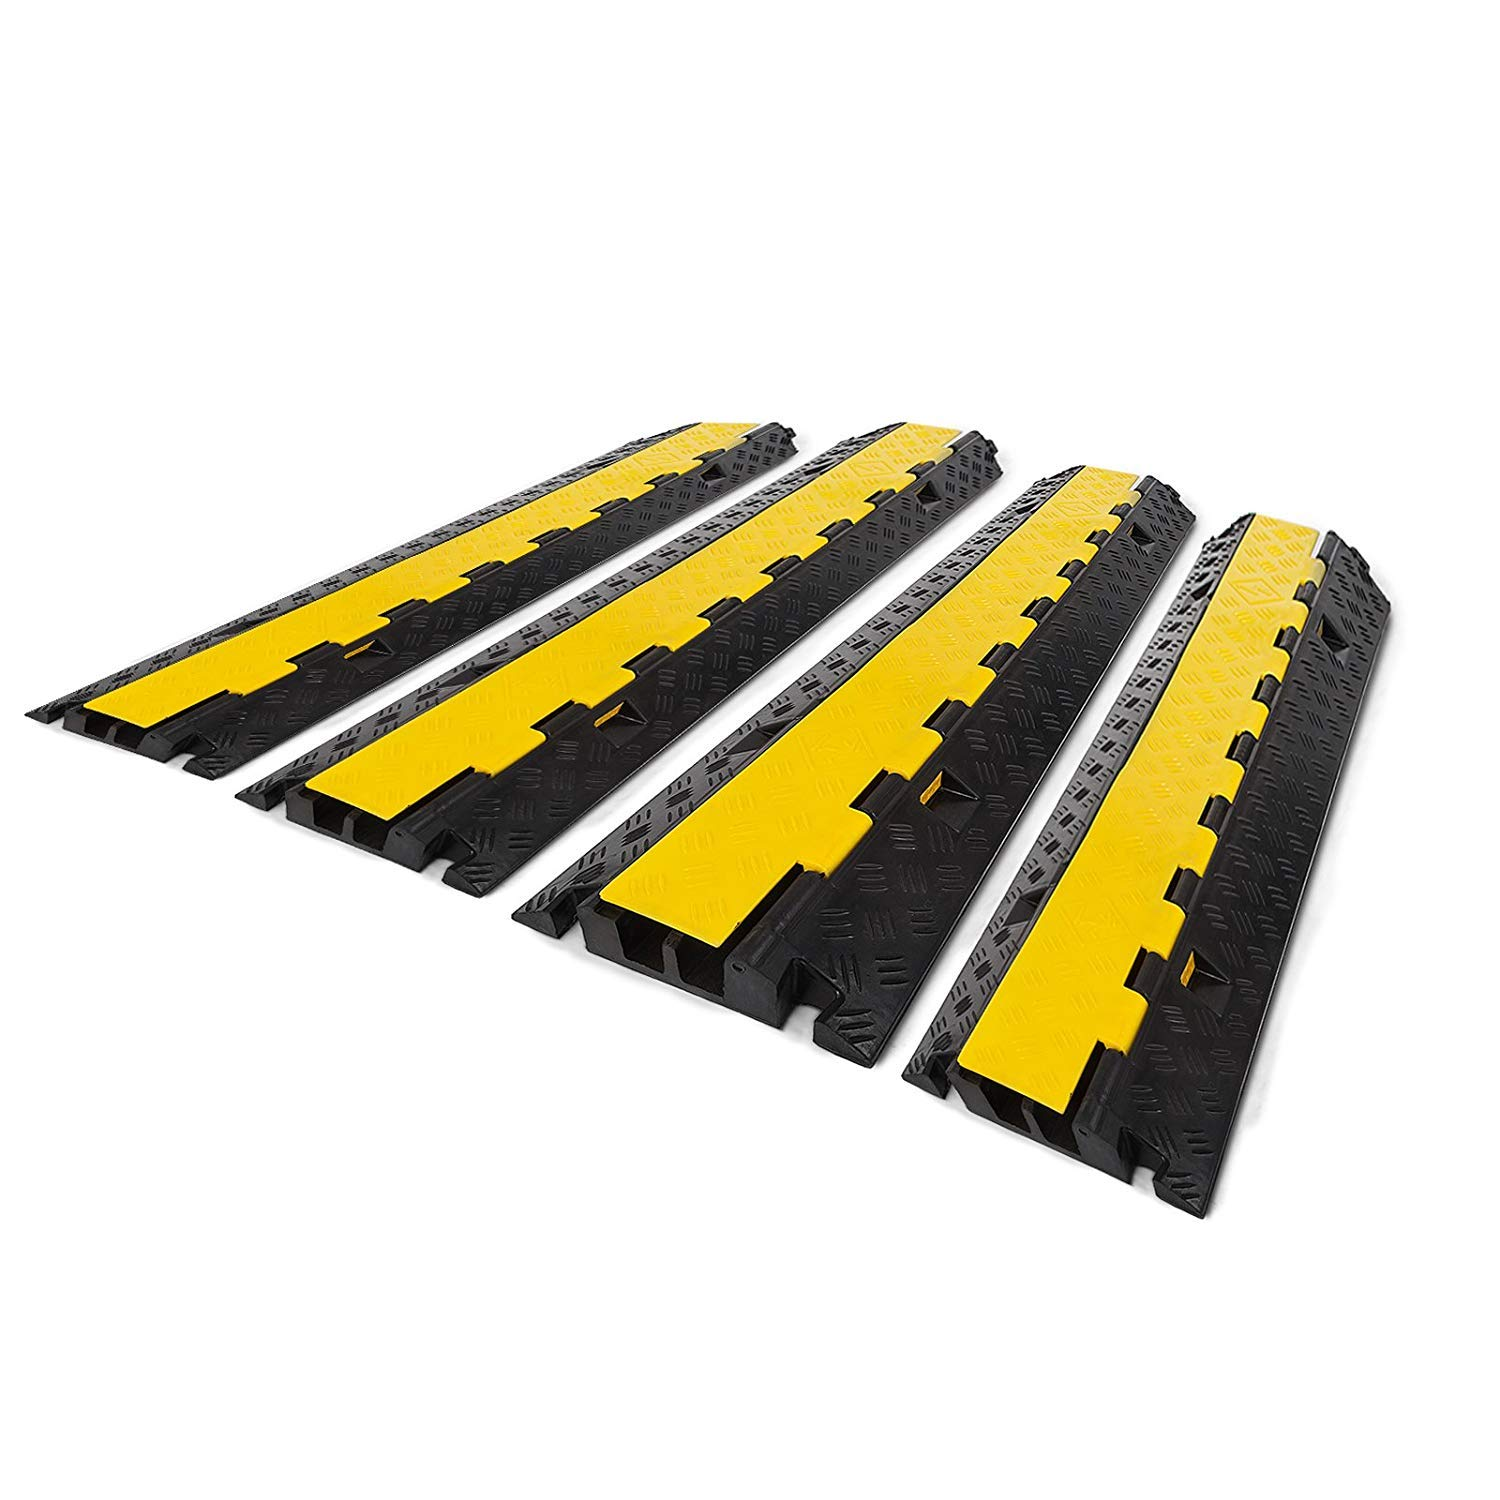 BestEquip 4 Pack Rubber Cable Protector Ramp 2 Channel Heavy Duty 66,000LB Load Capacity Cable Wire Cord Cover Ramp Speed Bump Driveway Hose Cable Ramp Protective Cover by BestEquip (Image #1)